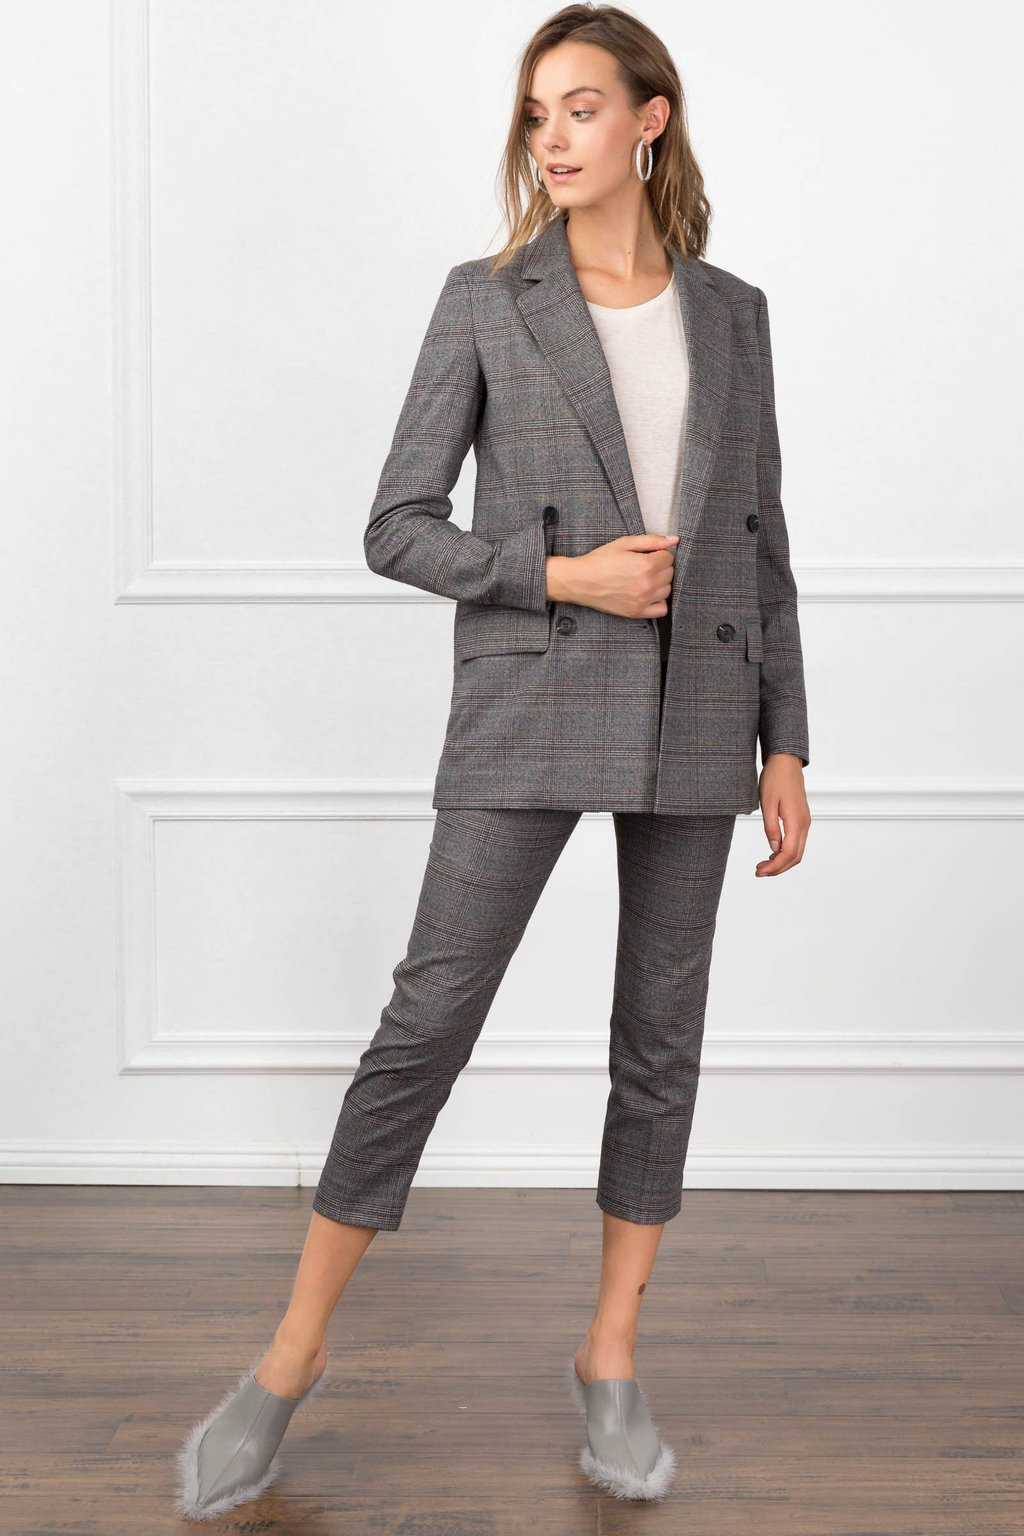 Aubrey Cropped Pant Co-ord suit Set for women by J.ING women's fashion clothing